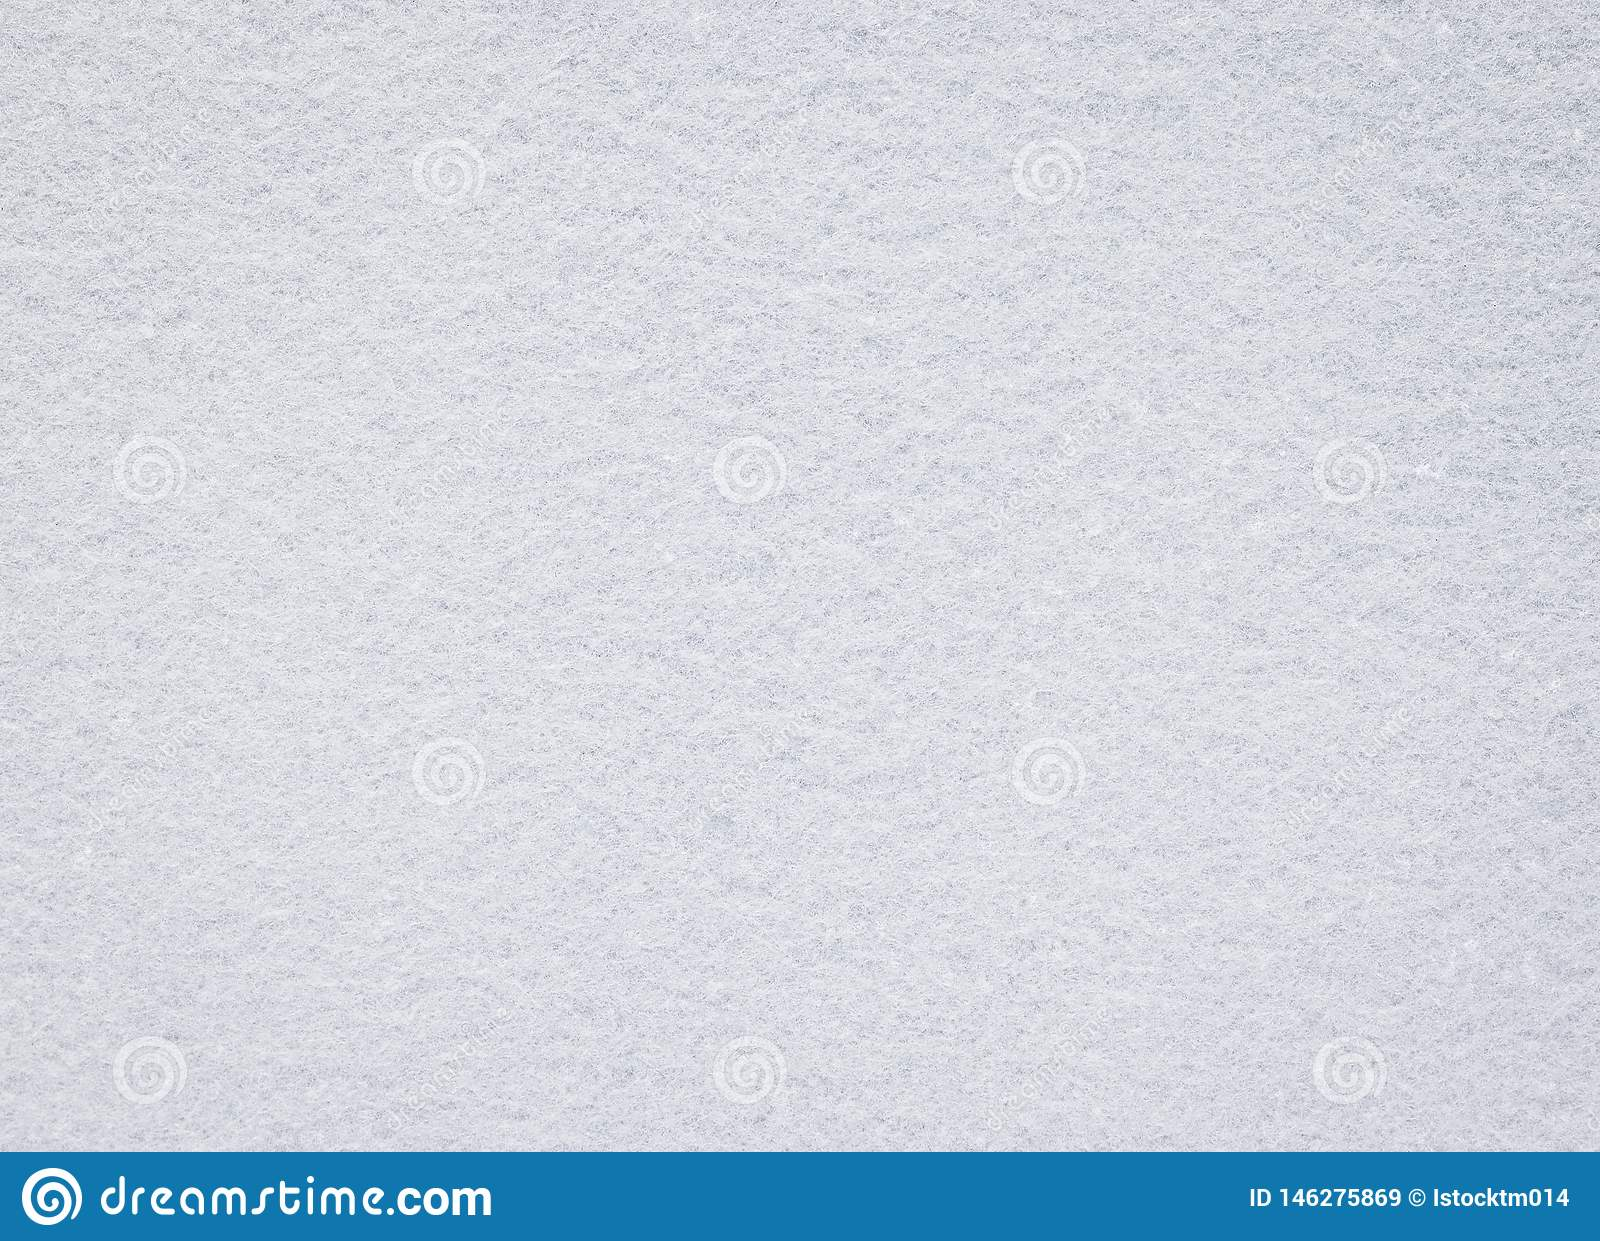 White felt texture. Blank fabric background. Detail of carpet material